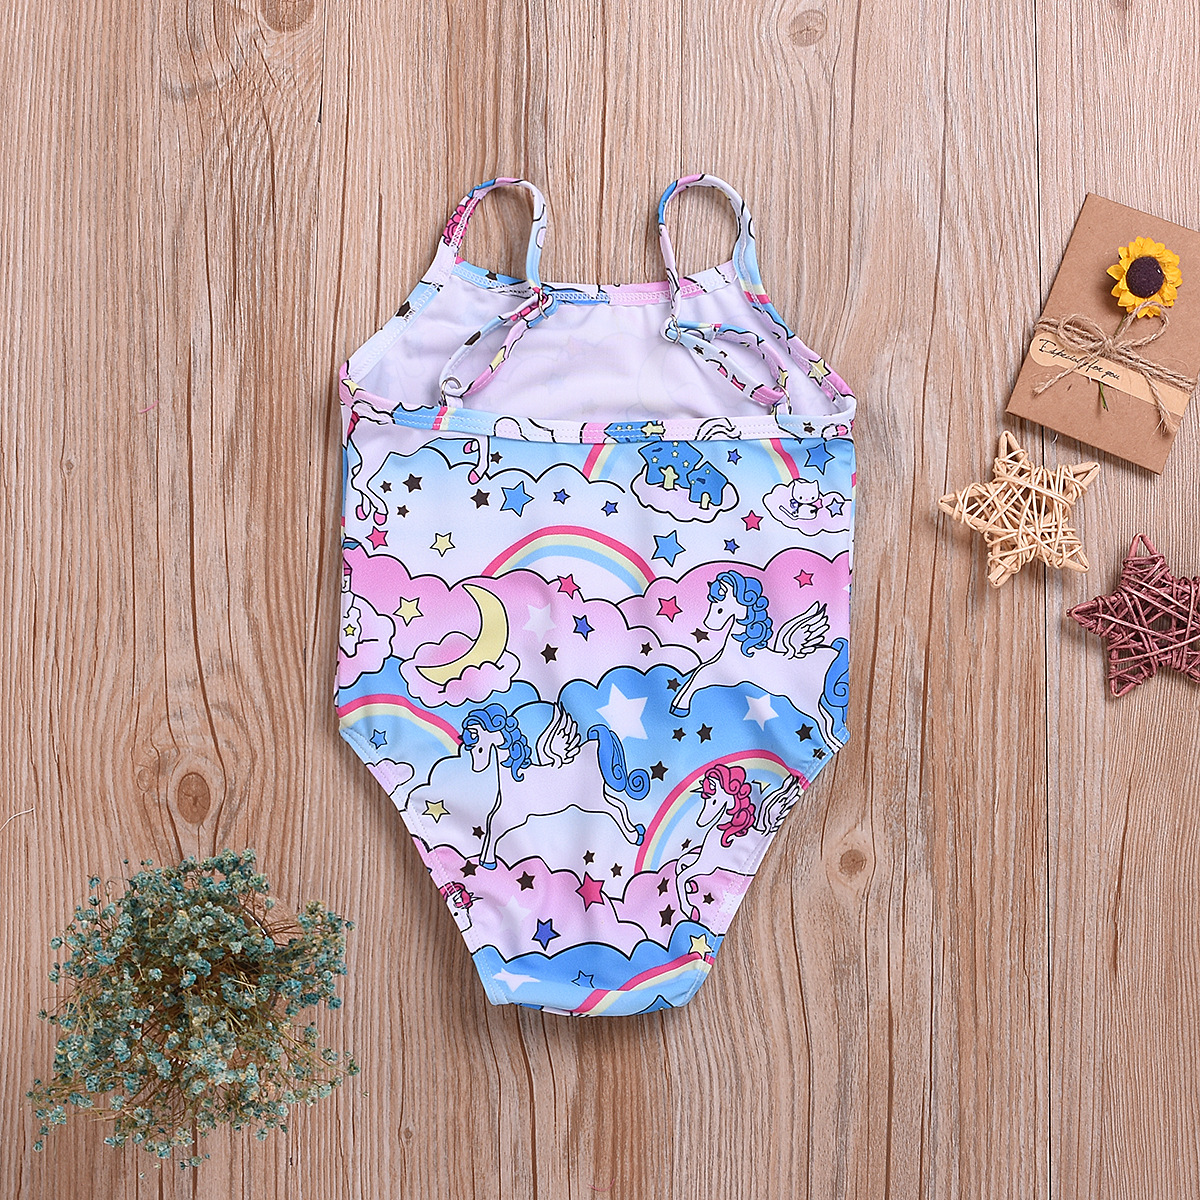 2019 Summer KID'S Swimwear Europe And America Hot Selling Cartoon Unicorn Cute Girls Camisole One-piece Swimming Suit